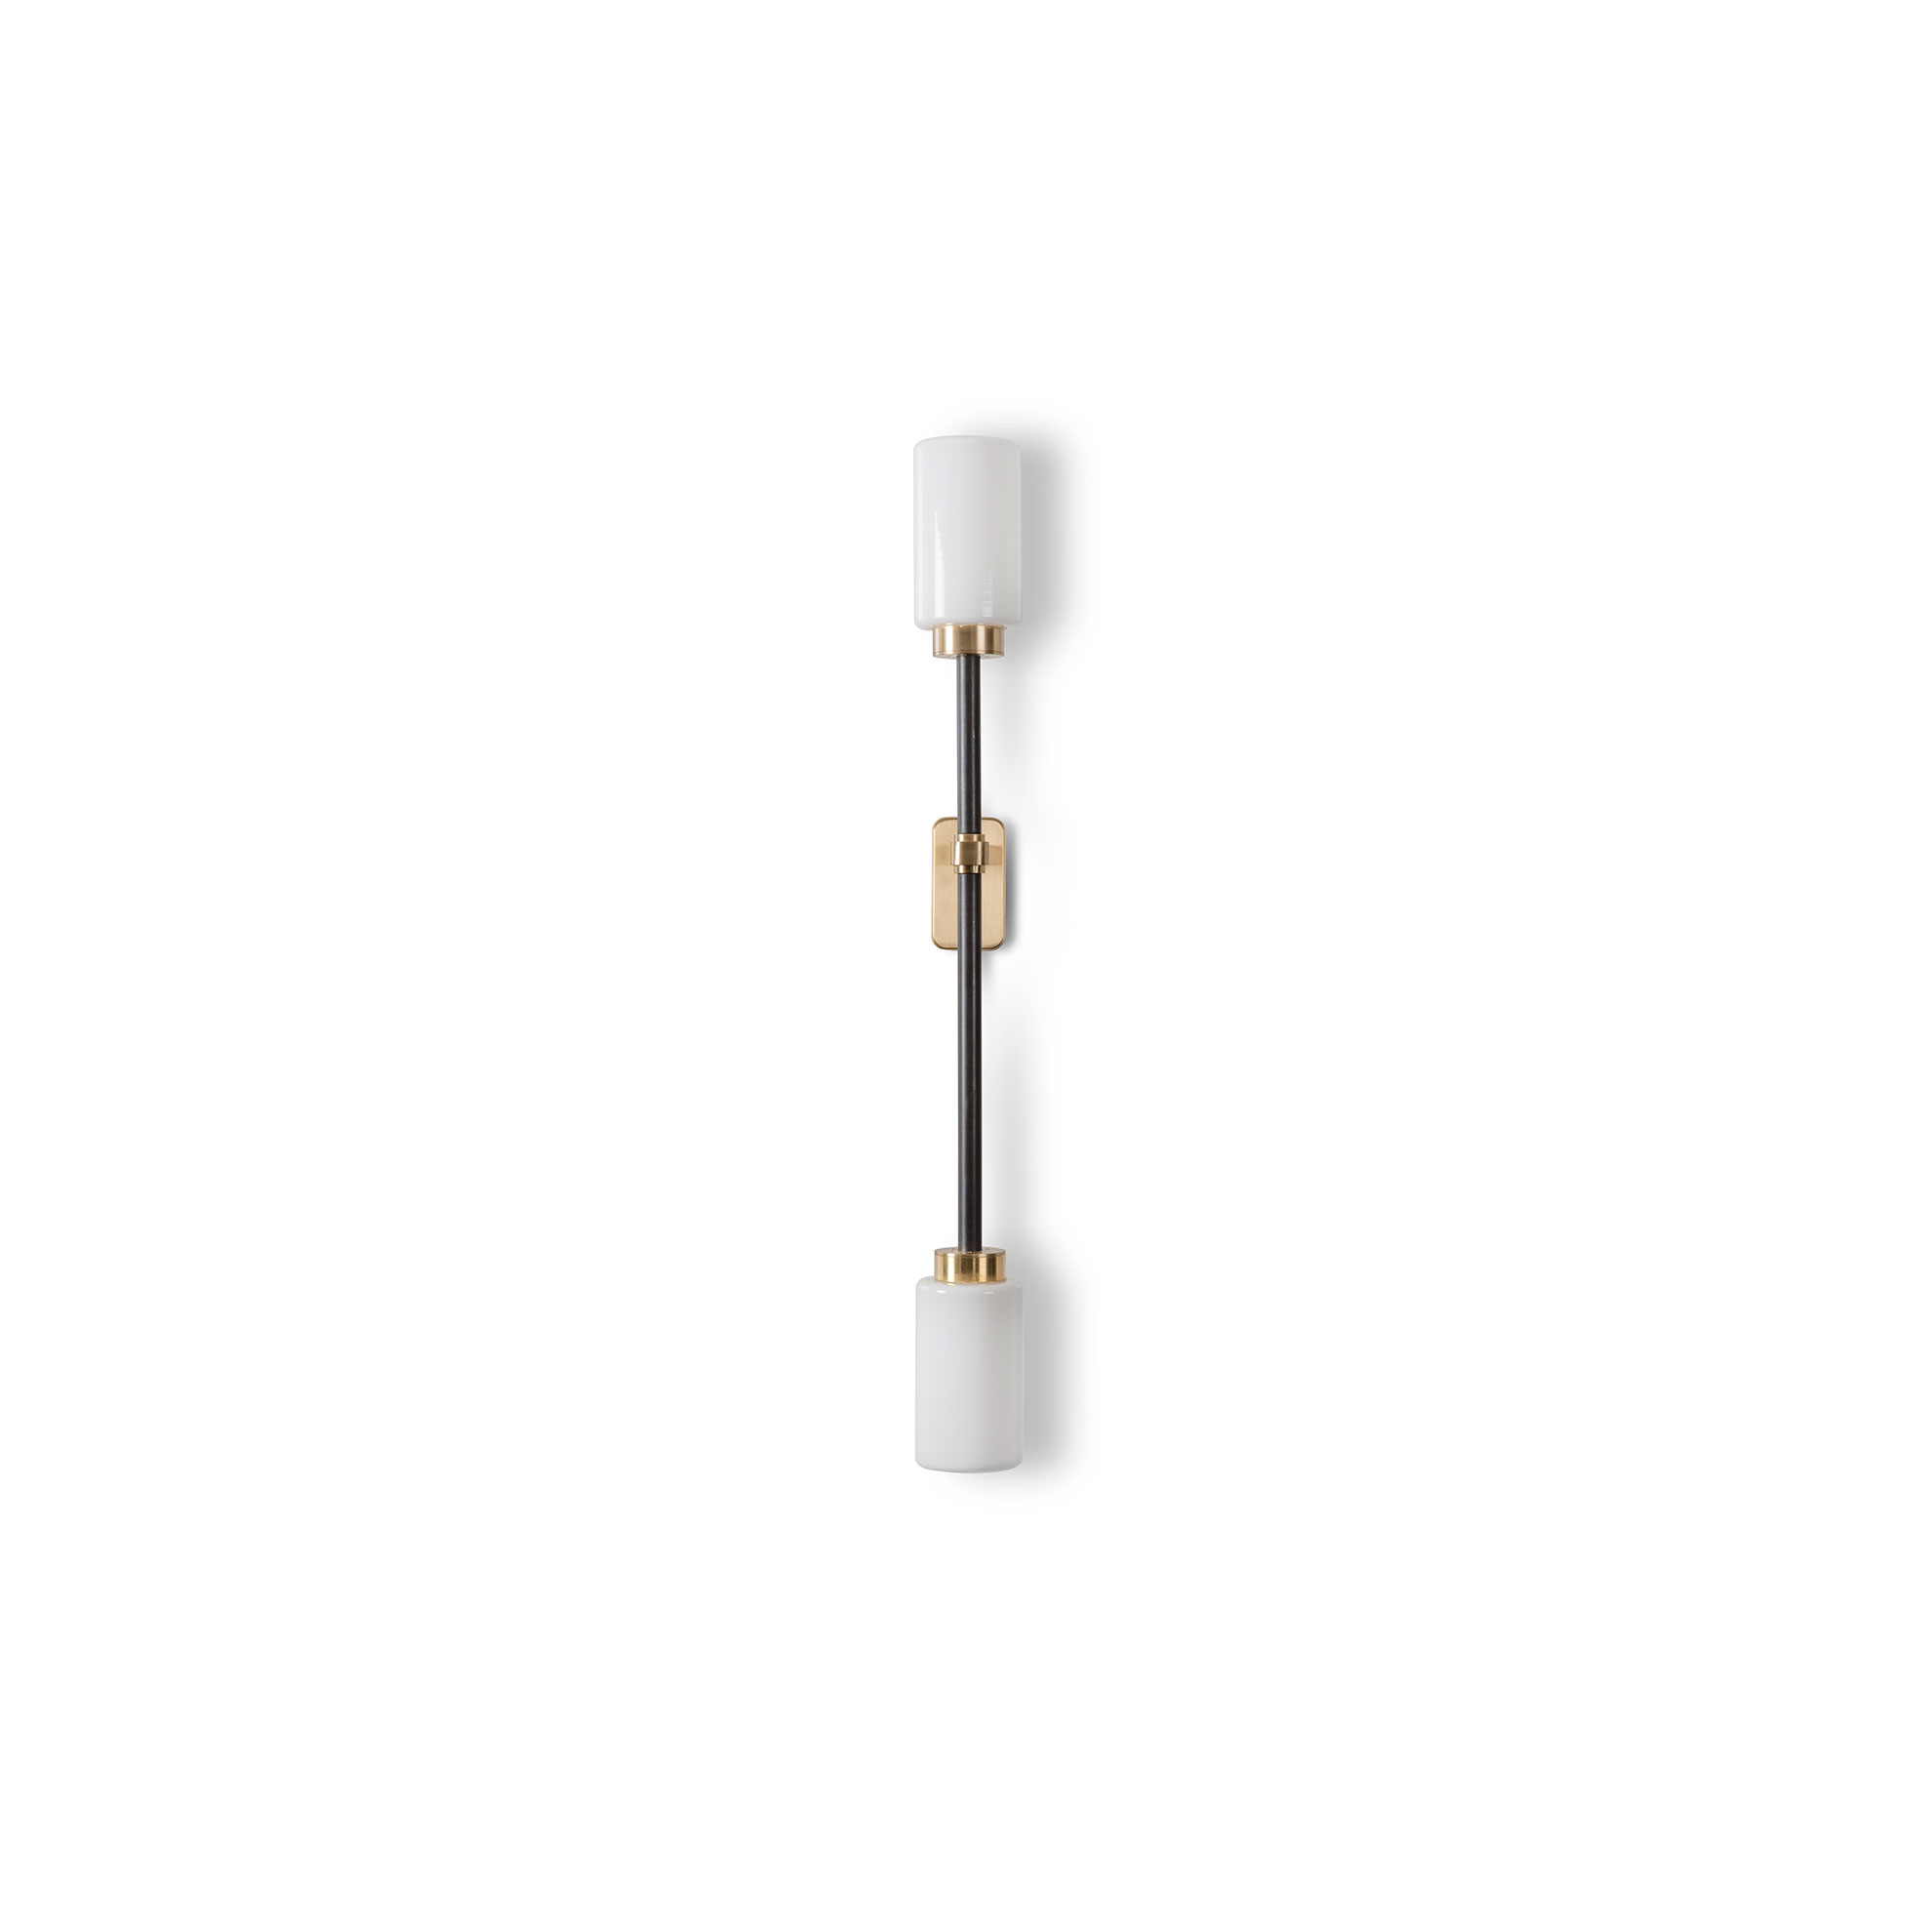 Farol Wall Light - Single - Finished in brass and bronze with two elegant cylindrical shades, the Farol Single Wall Light will lend a luxurious touch to any living space. Available with opal or smoked glass shades.    | Matter of Stuff